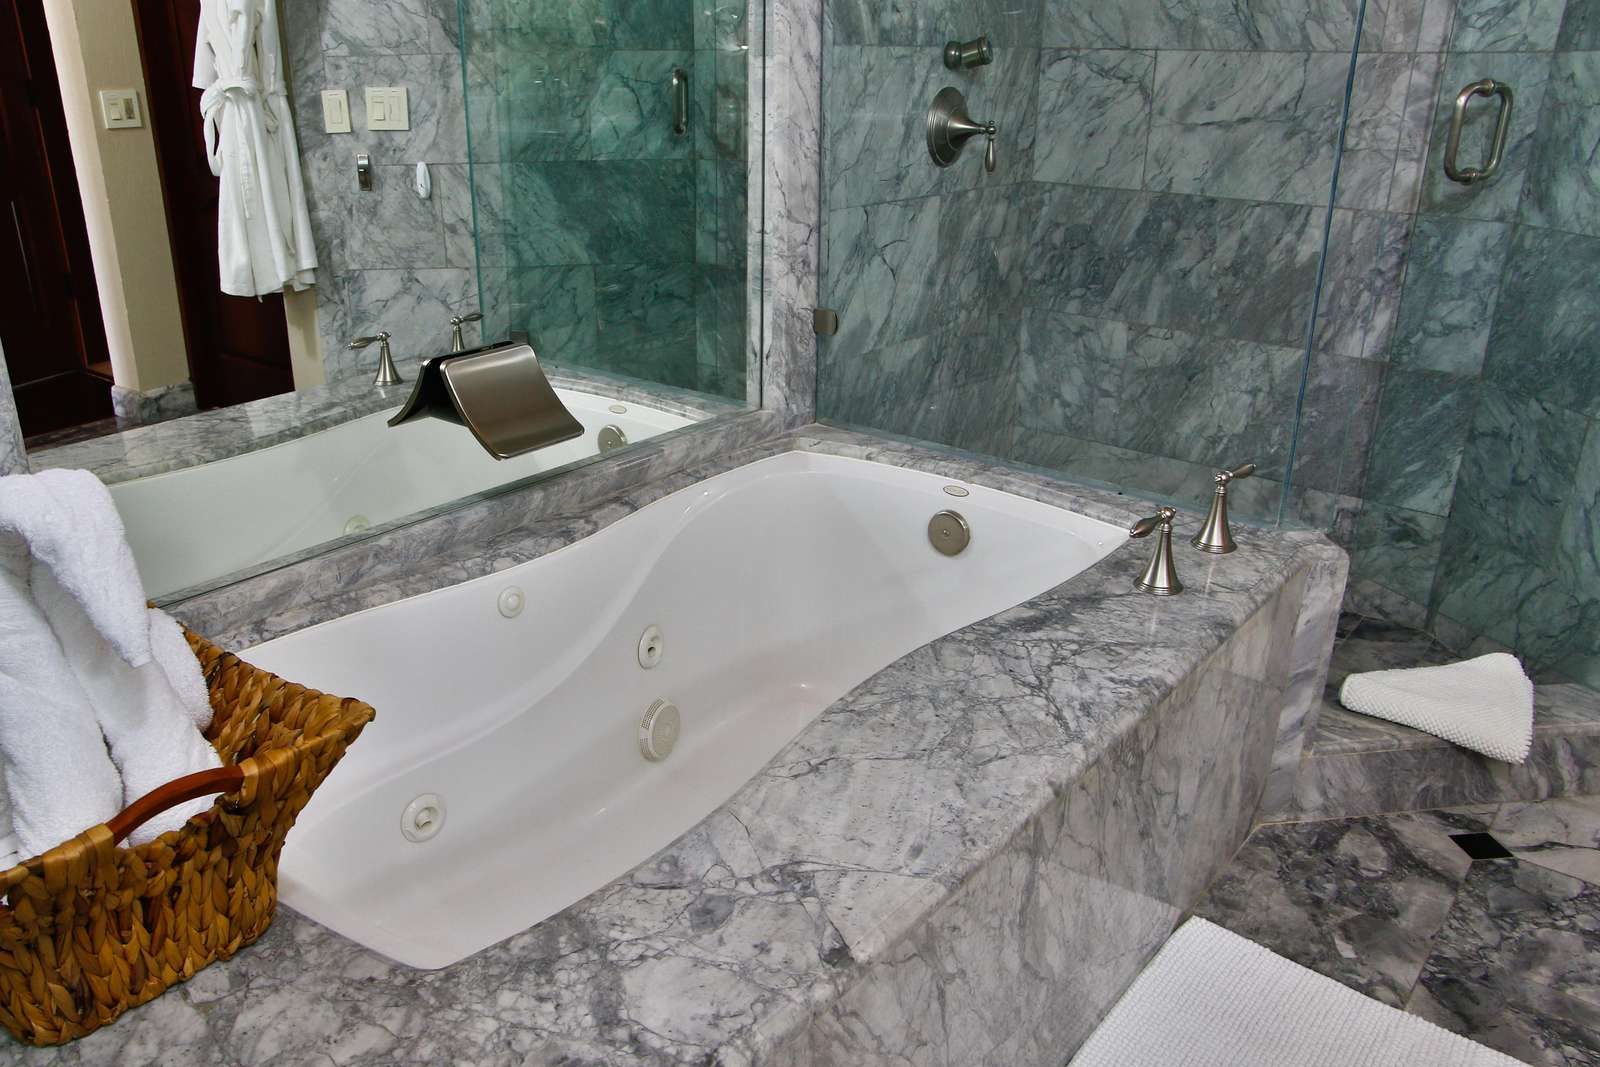 Jacuzzi tub in the master bathroom